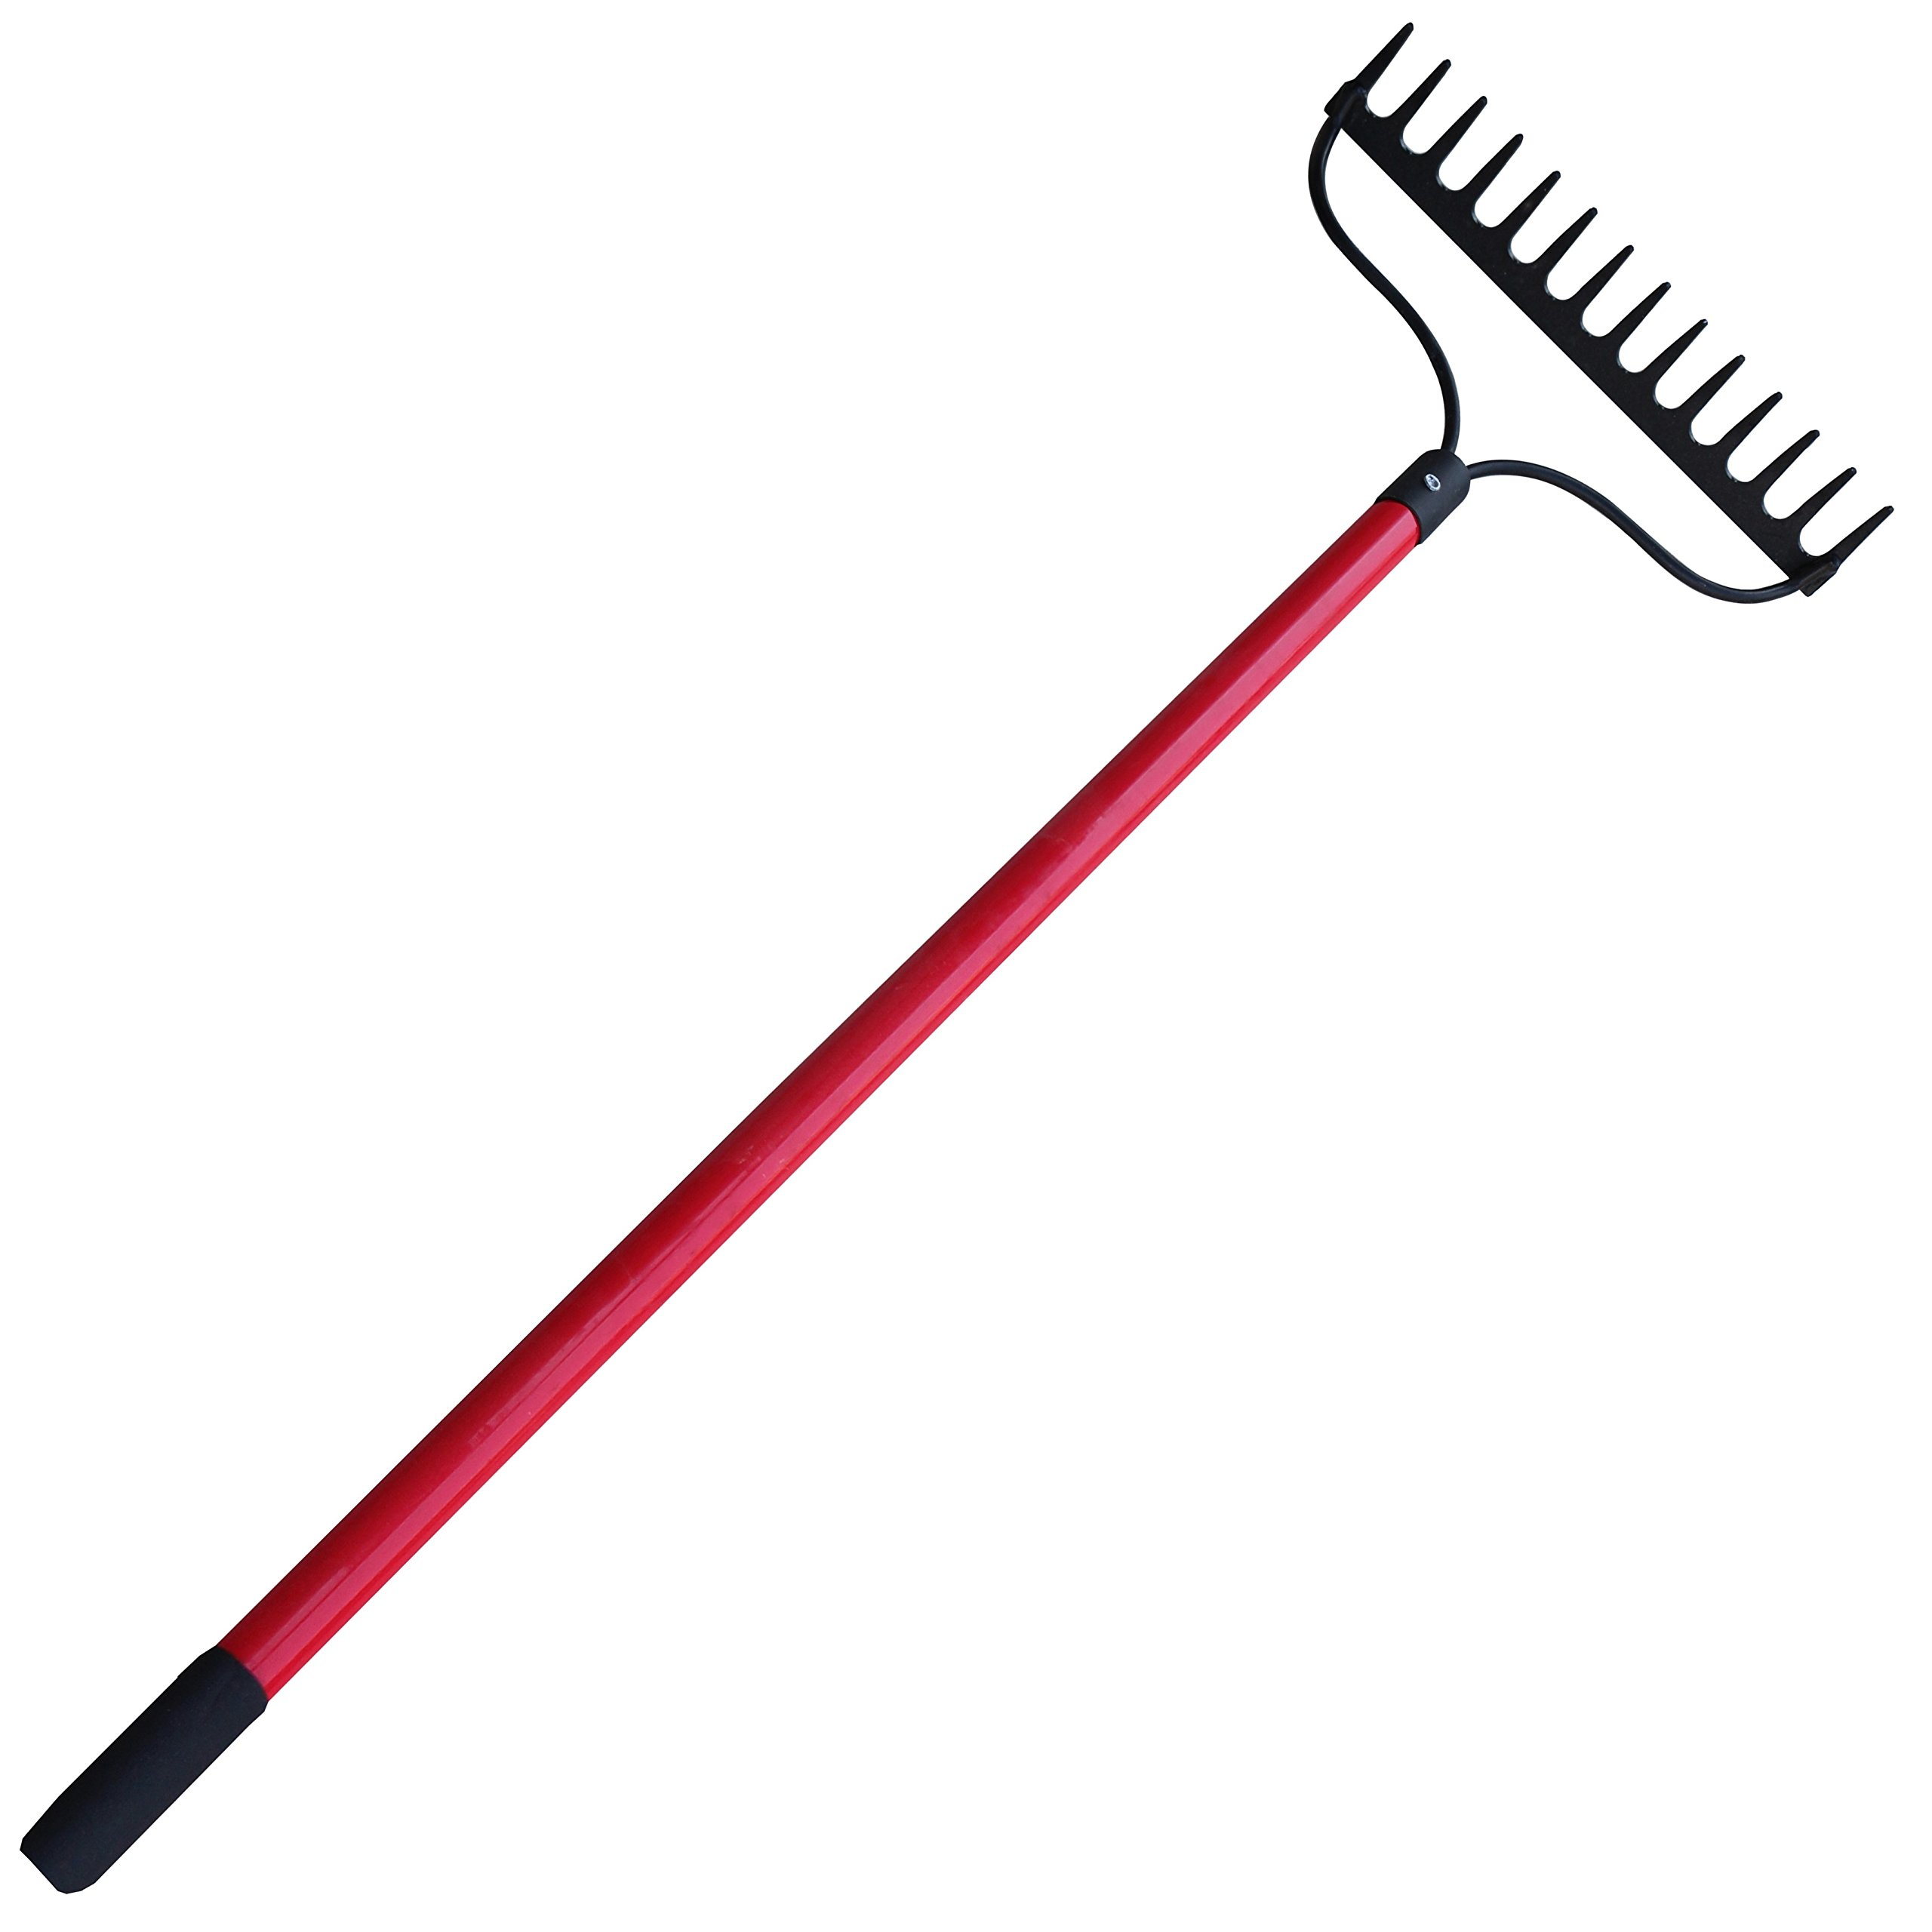 TABOR TOOLS J205 Level Head Rake With Strong Long 54'' Fiberglass Handle, 14-Tine